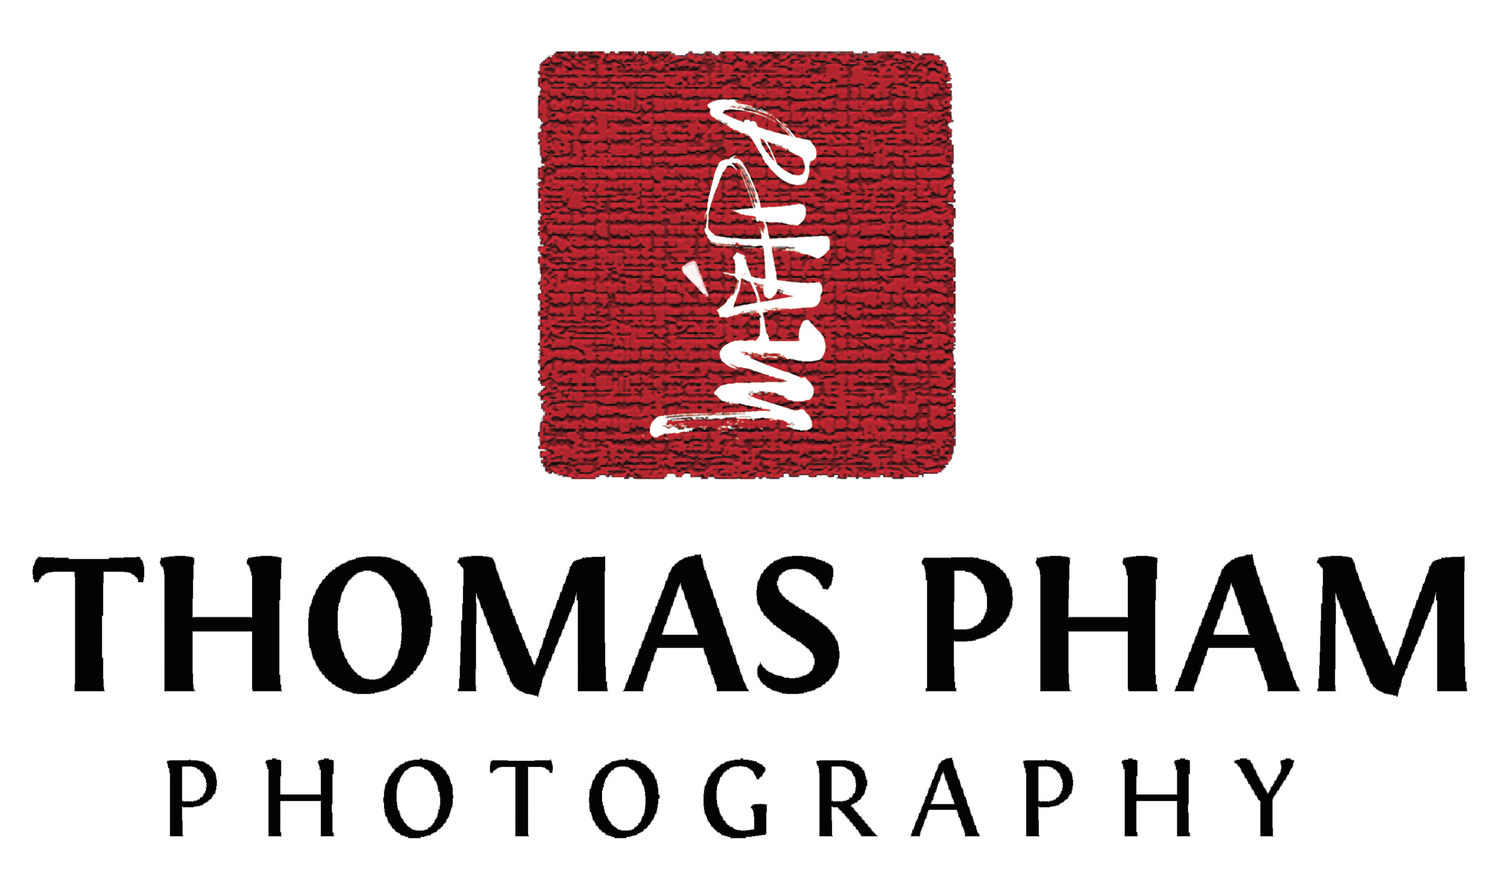 Thomas Pham Photography